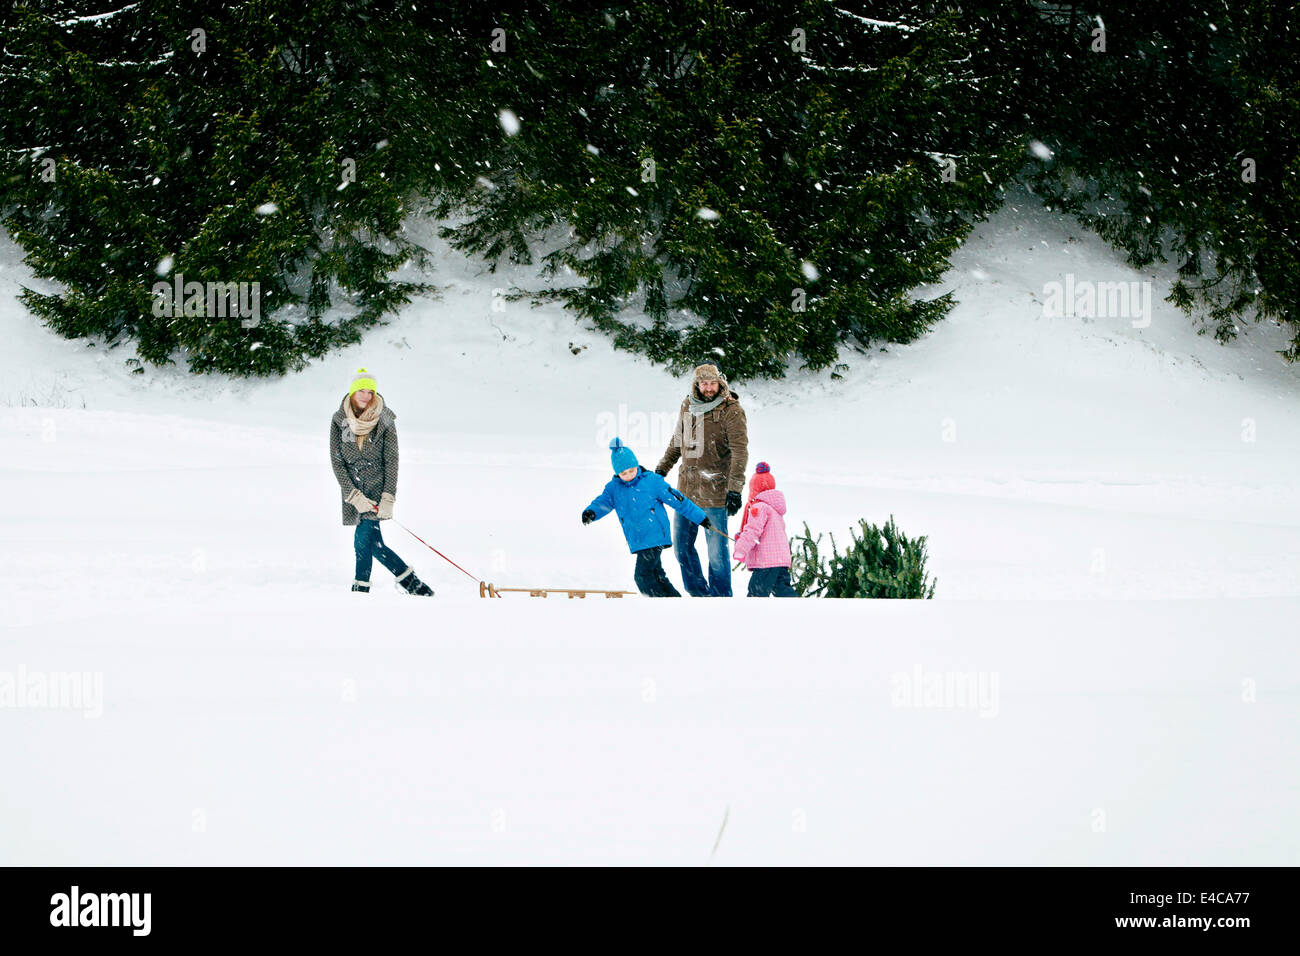 Family with two children pulls Christmas tree in snow-covered landscape, Bavaria, Germany - Stock Image